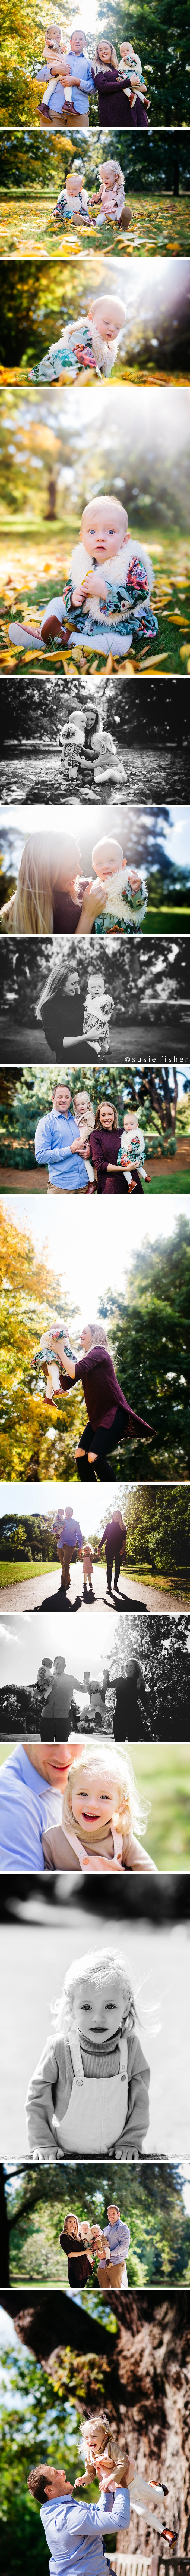 David Paice Outdoor Family Photo Session Woking_Copyright Susie Fisher Photography